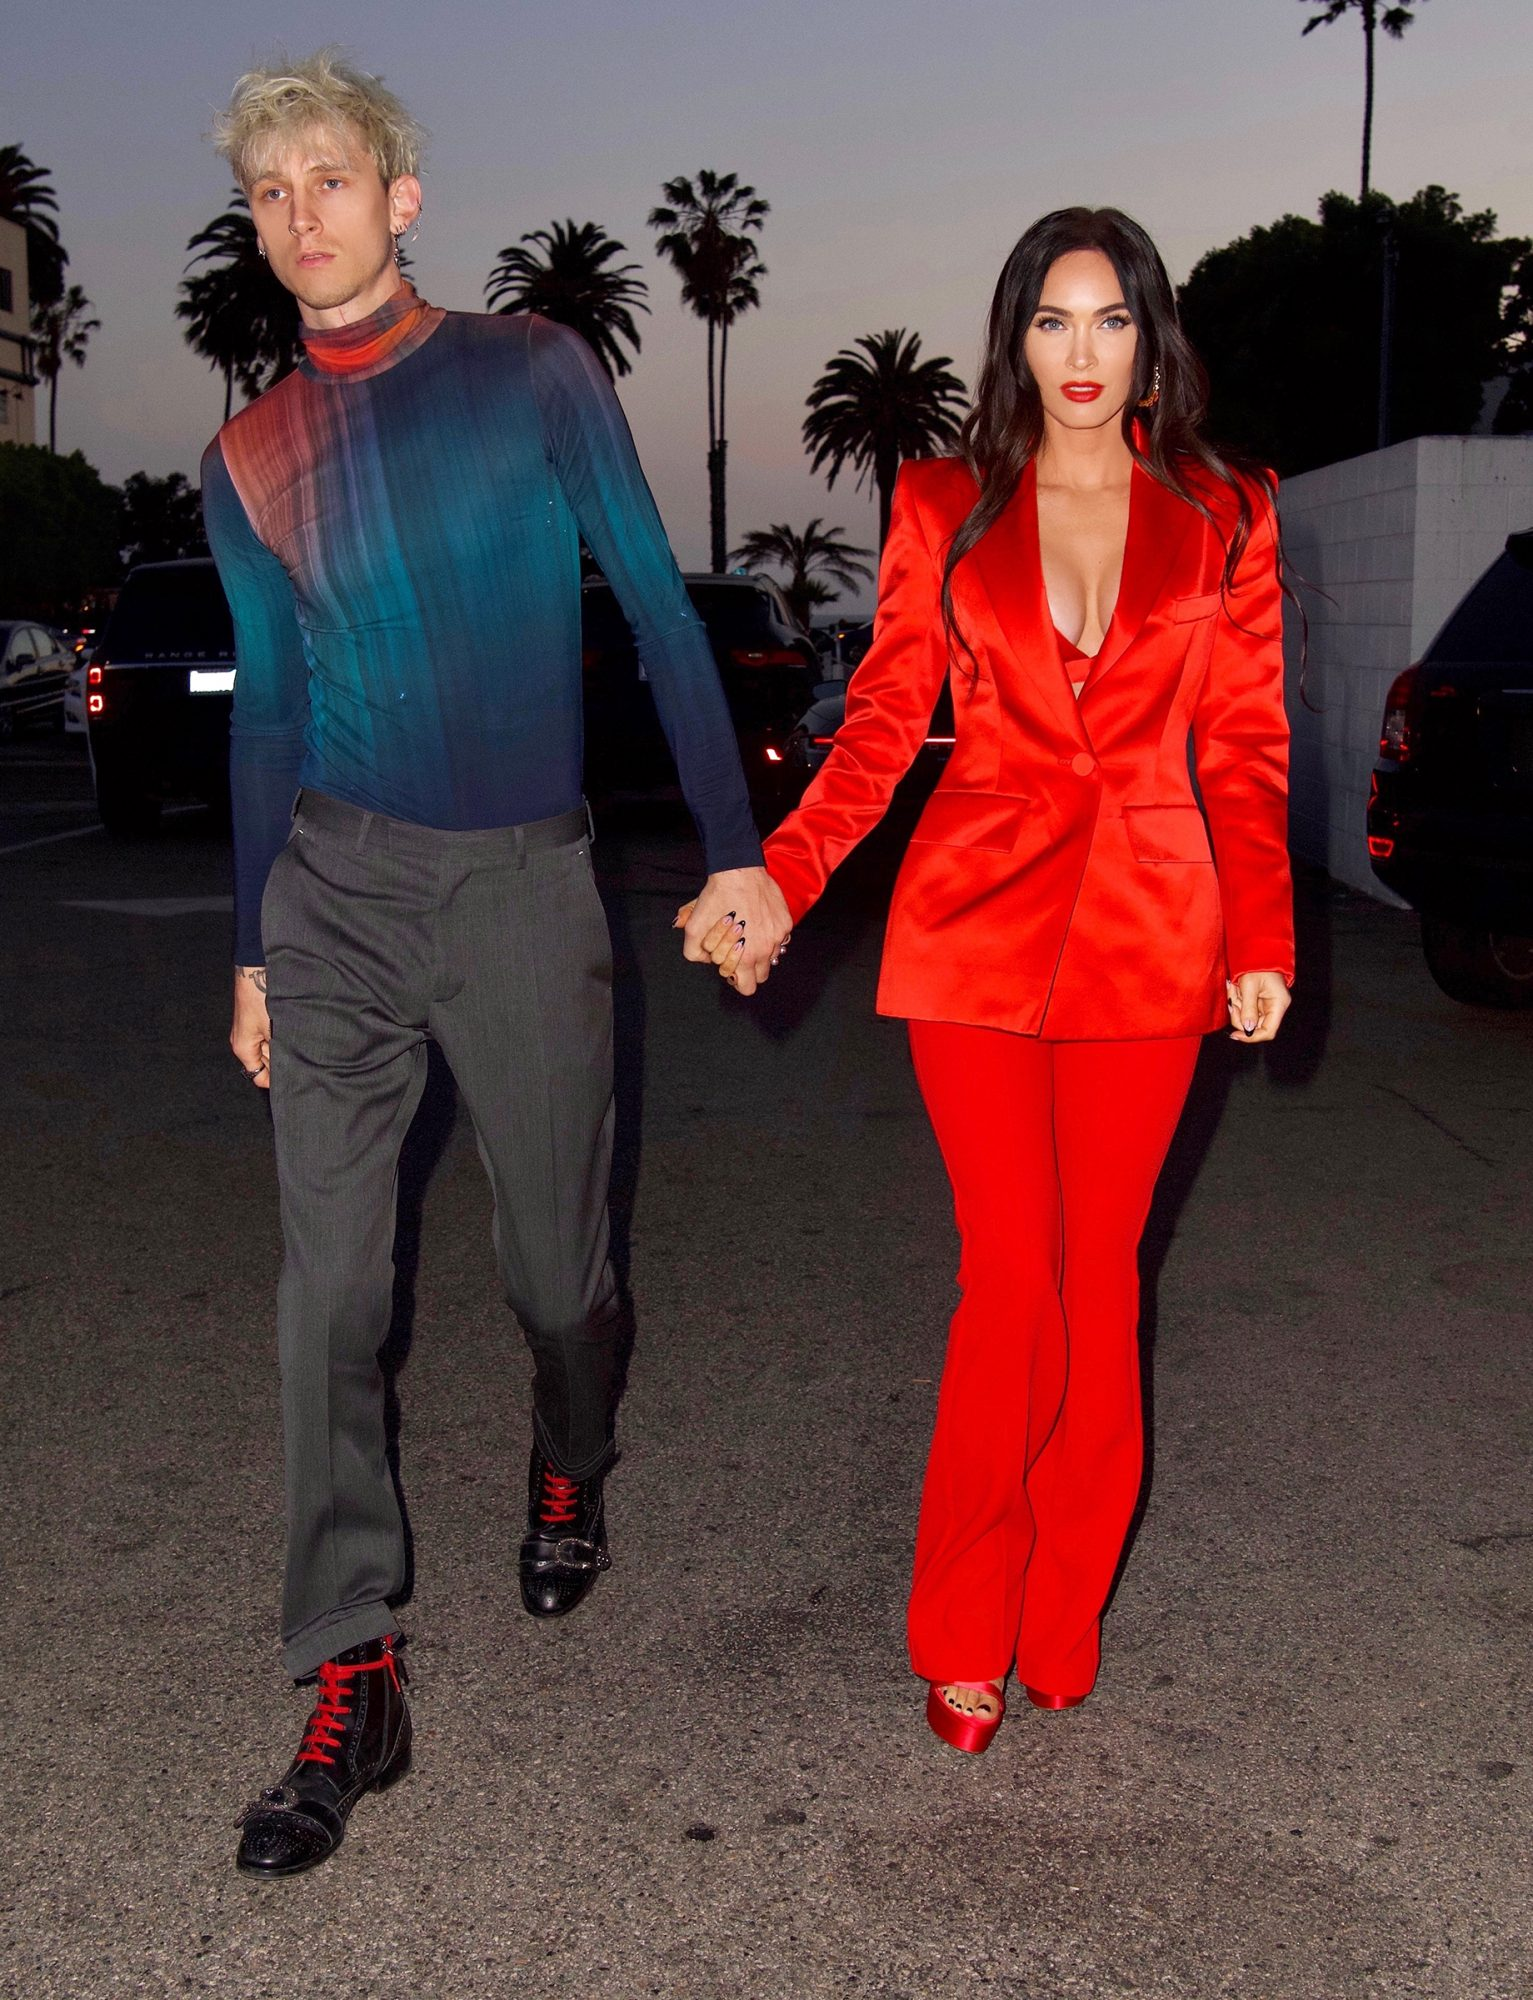 Megan Fox is Red Hot As She Puts On A Busty Display To Celebrate Her 35th Birthday in Santa Monica with Machine Gun Kelly.